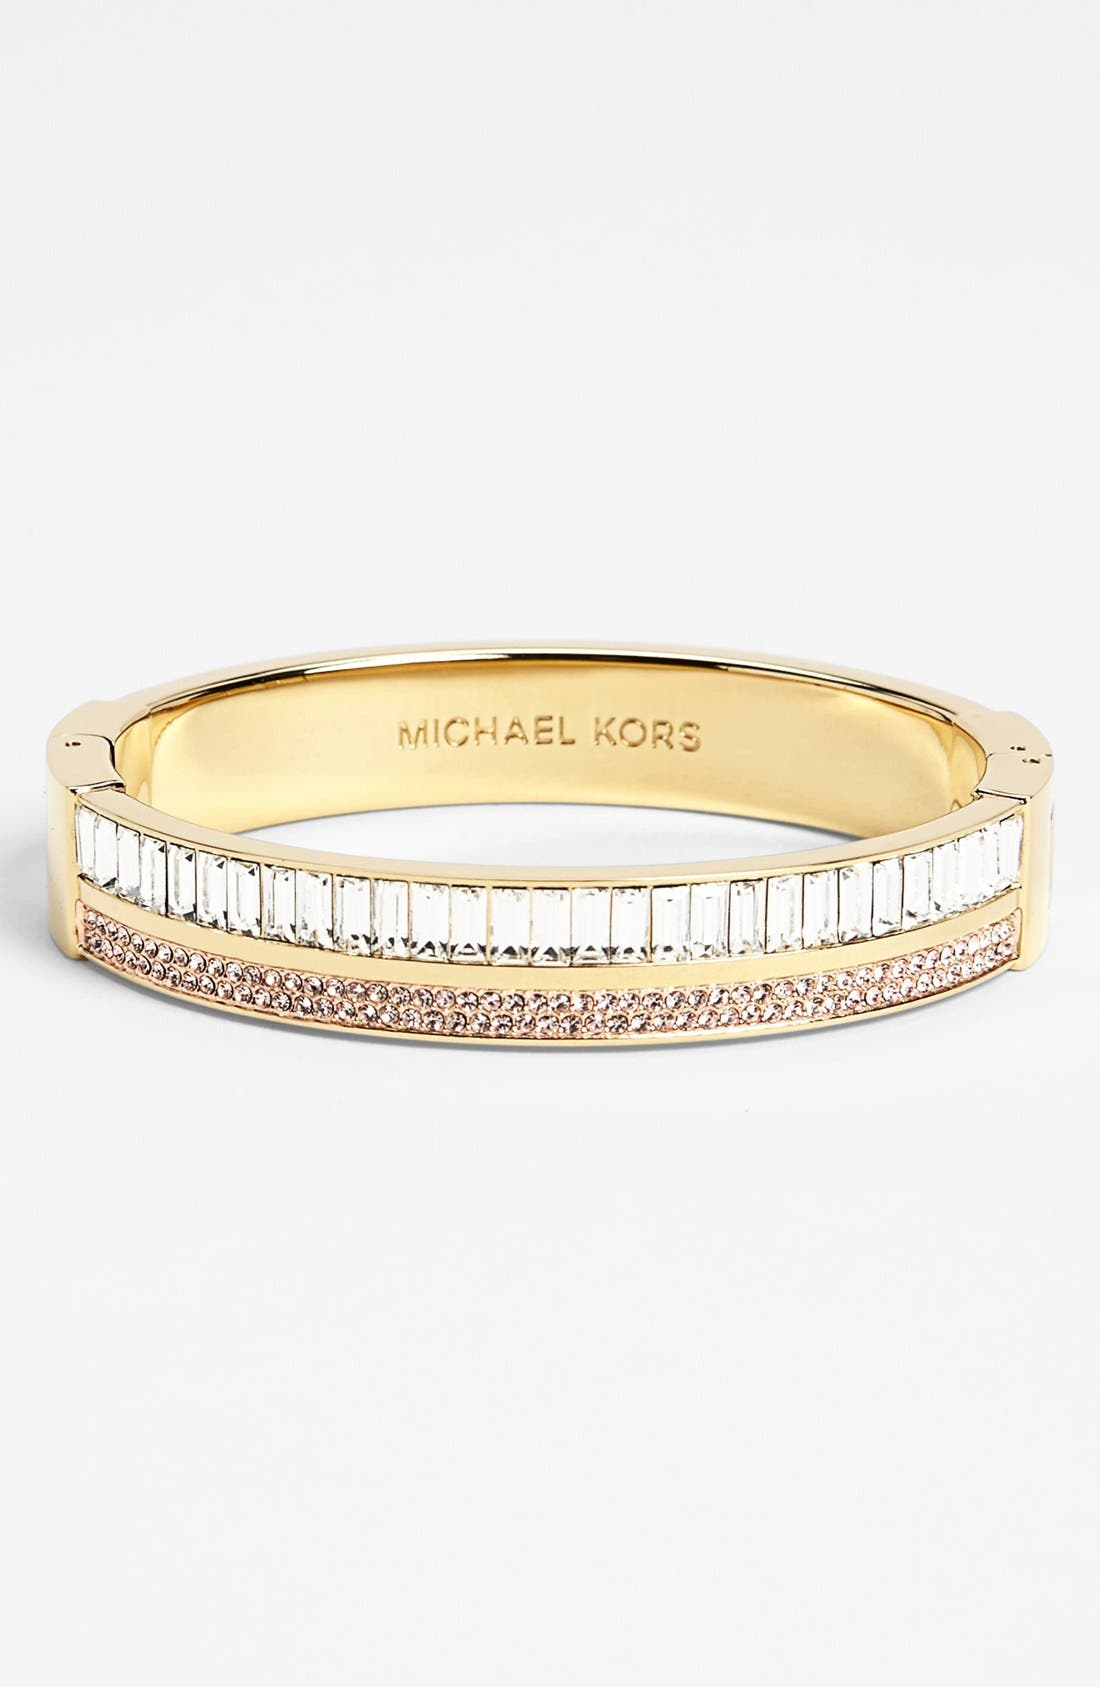 Main Image - Michael Kors 'Modernist Glitz' Hinged Bangle